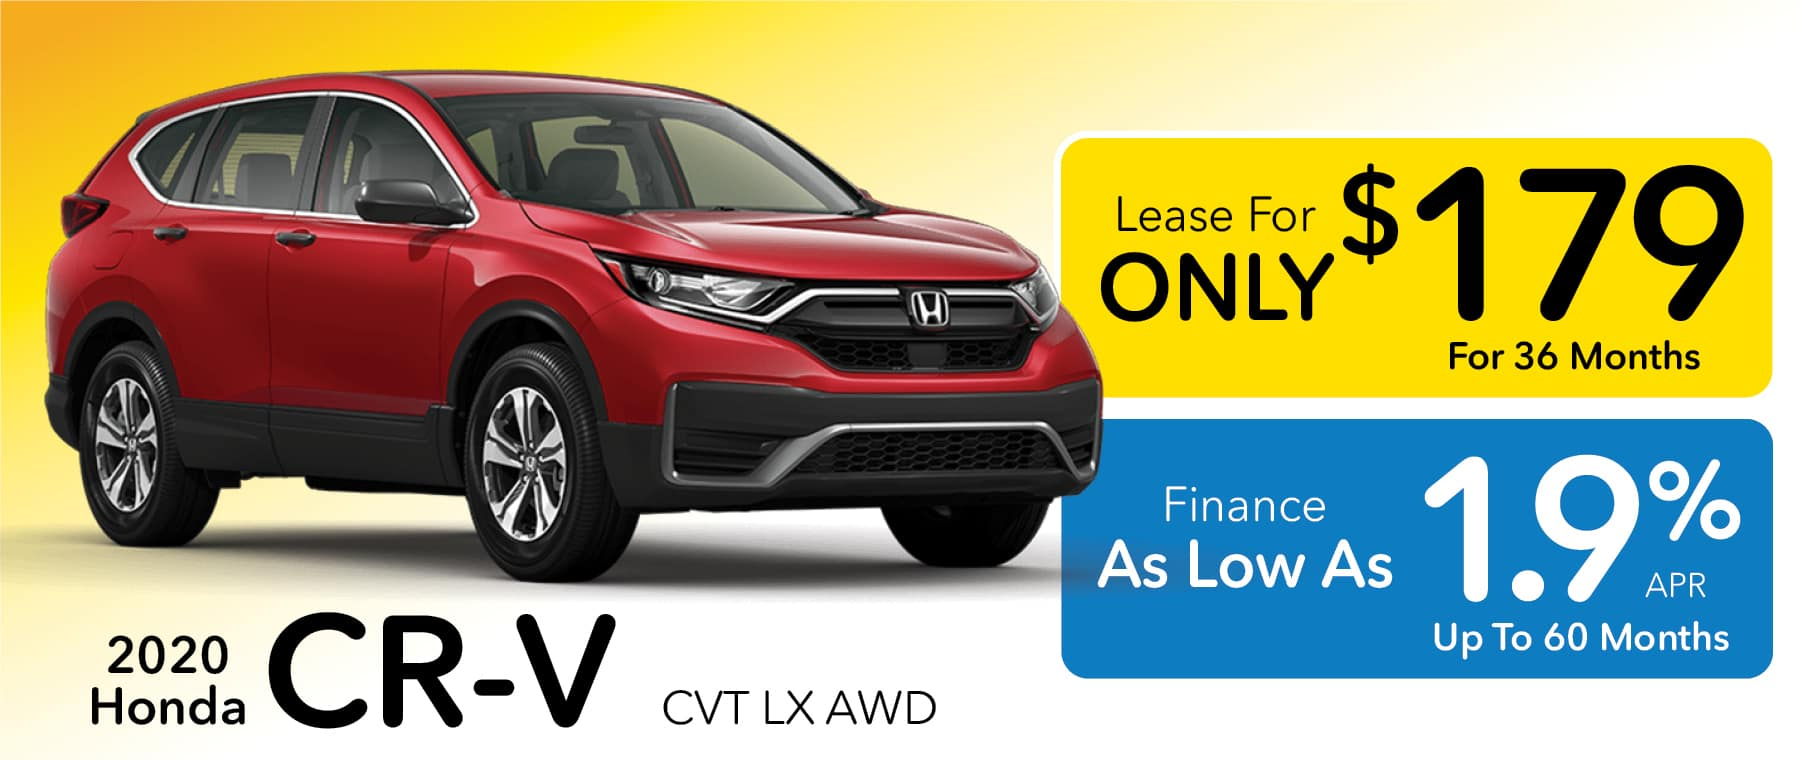 2020 Honda CR-V Lease for $179 per month of Finance for 1.9% APR for up to 60 monthsat Smail Honda